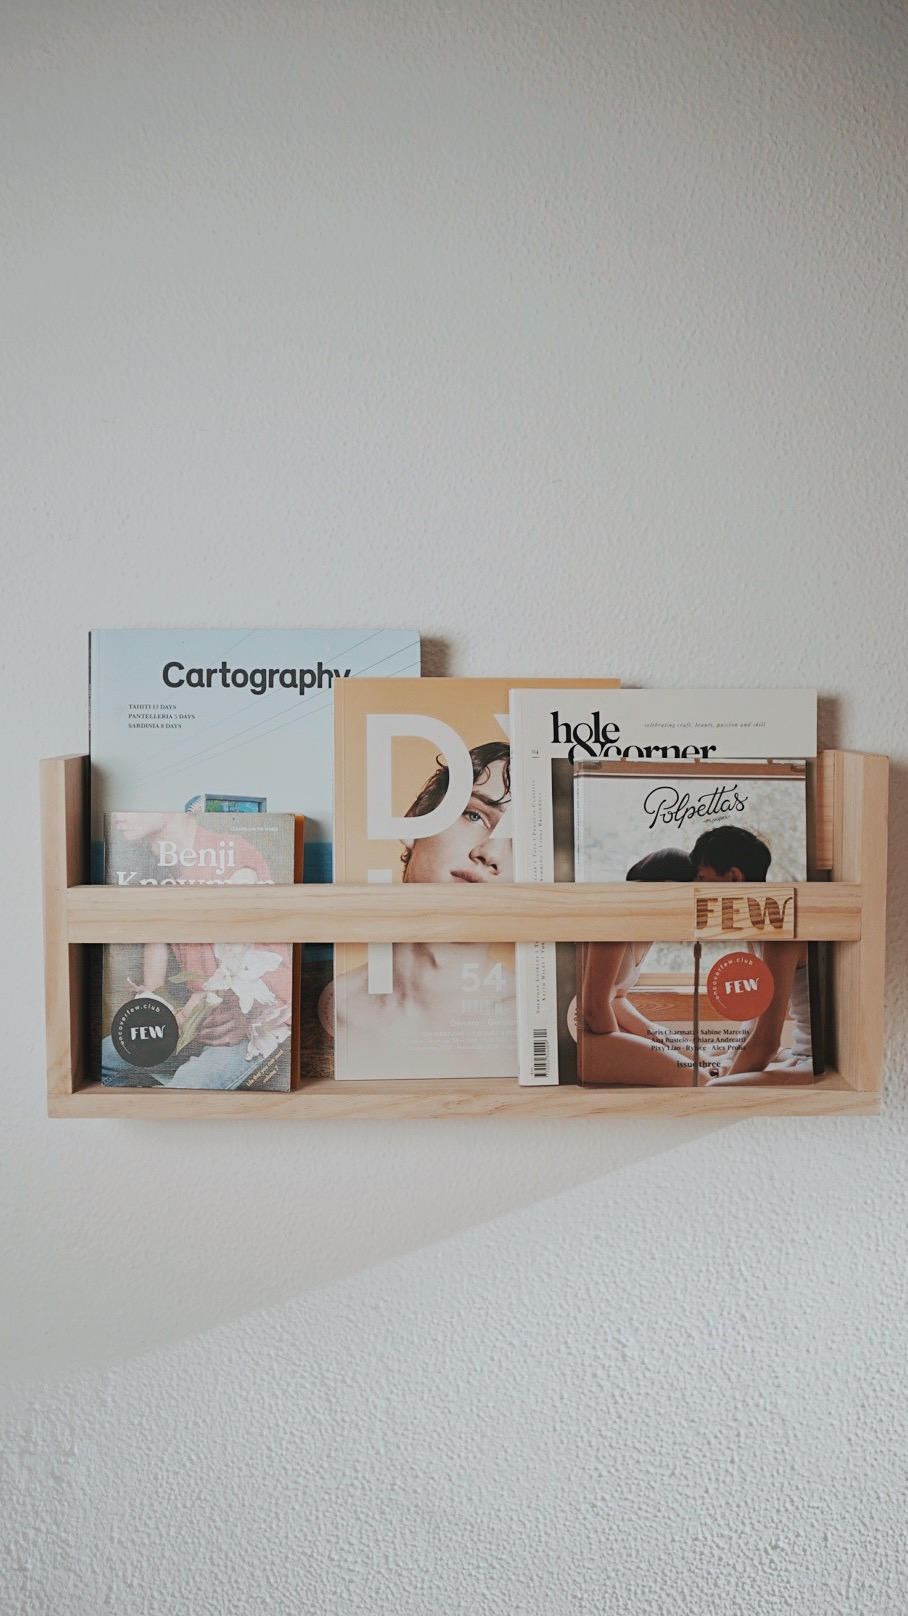 FEW - Independent magazines subscription box